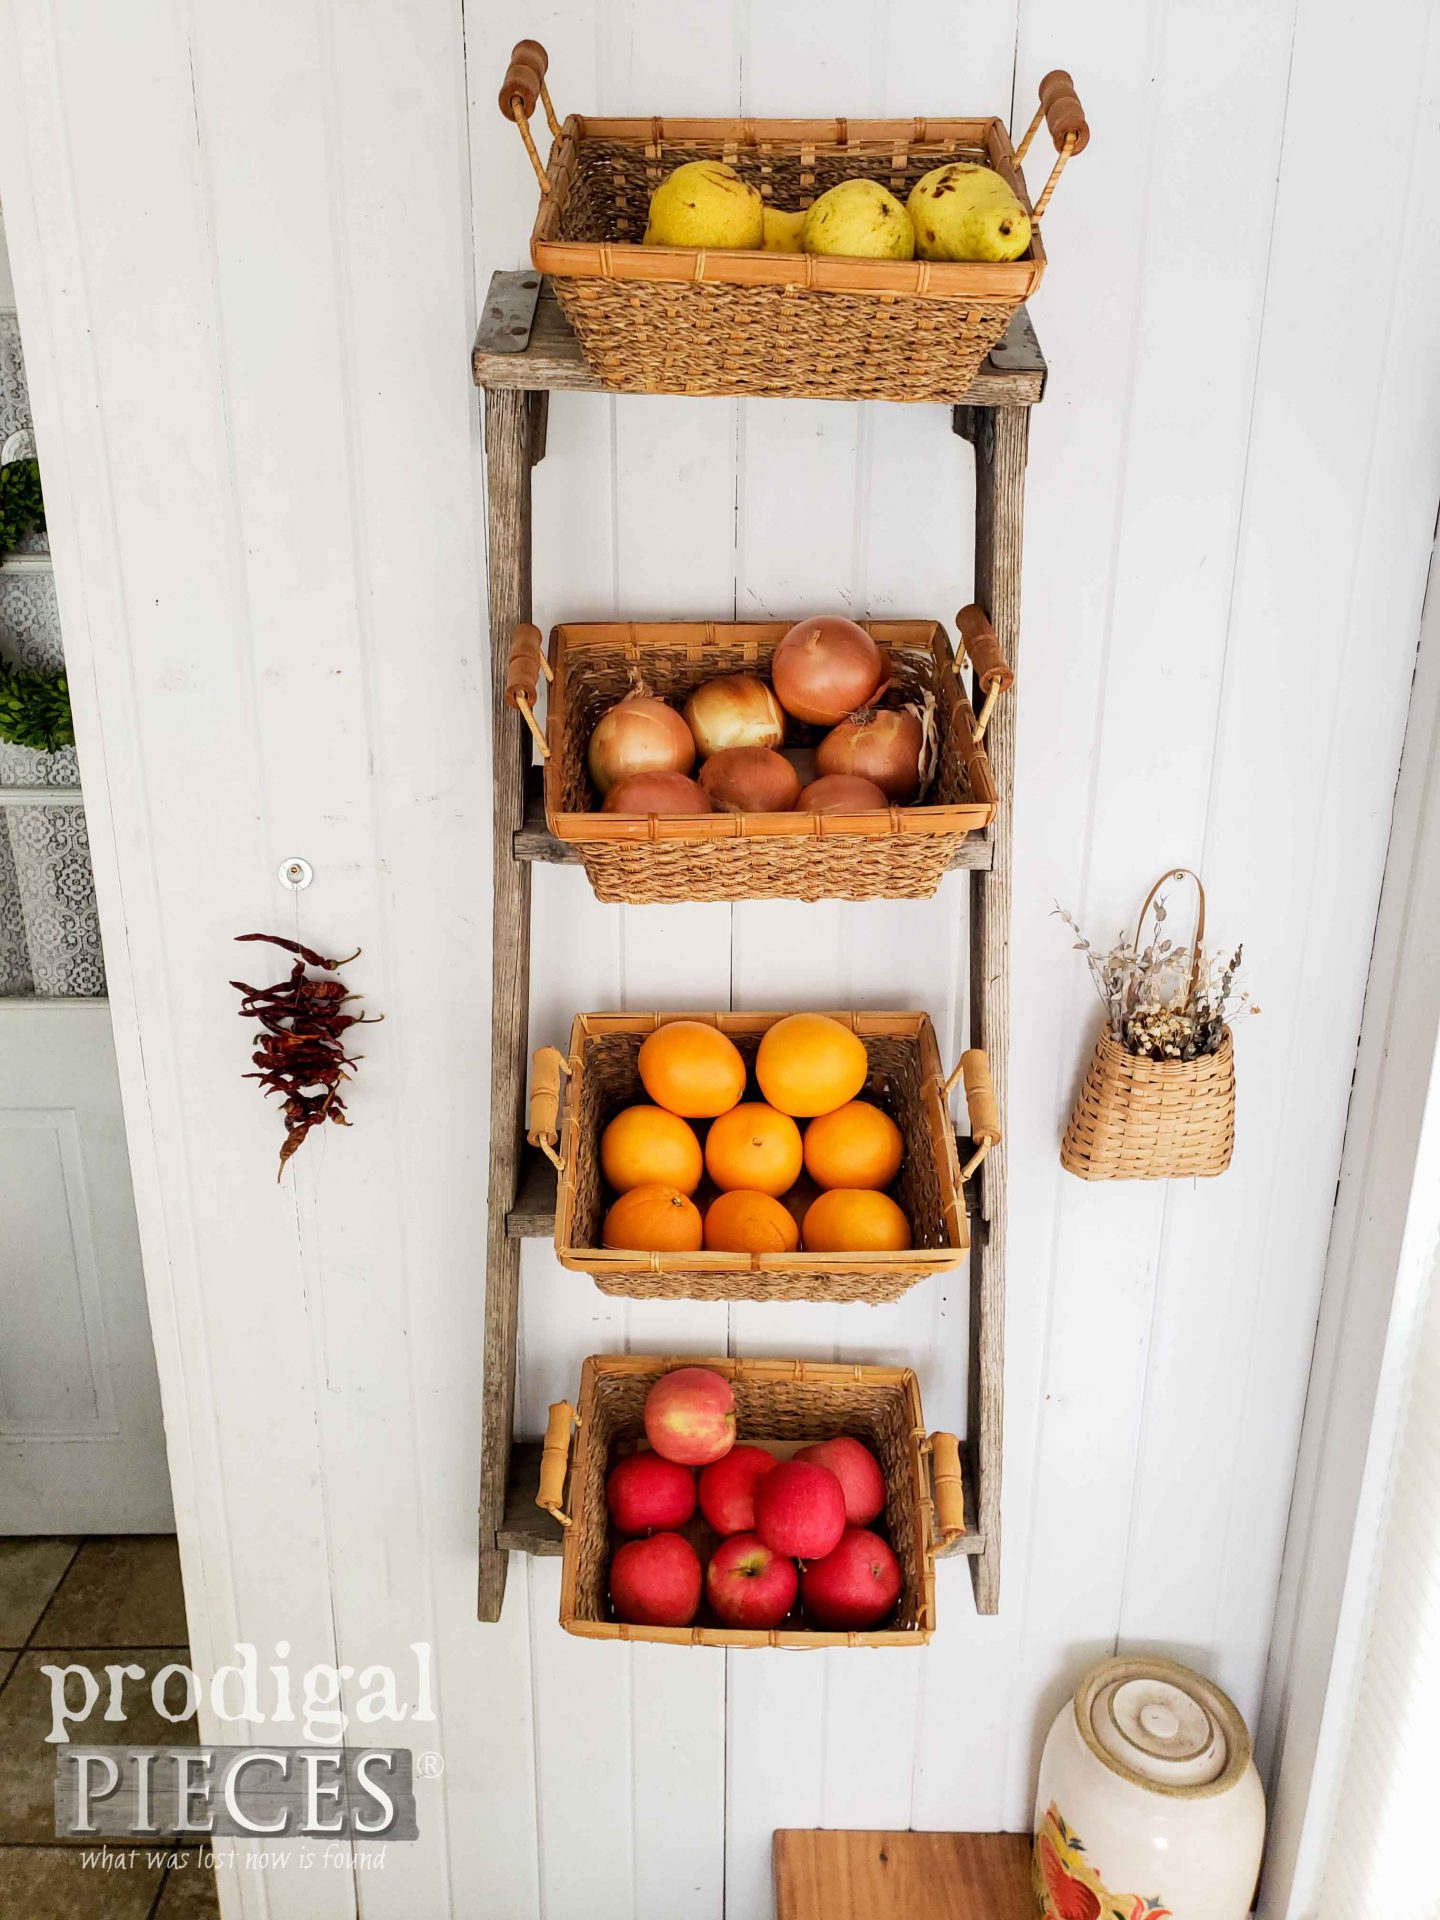 Upcycled Broken Ladder used as Produce Basket Holder in Farmhouse Kitchen Decor by Larissa of Prodigal Pieces | prodigalpieces.com #prodigalpieces #farmhouse #home #homedecor #diy #storage #kitchen